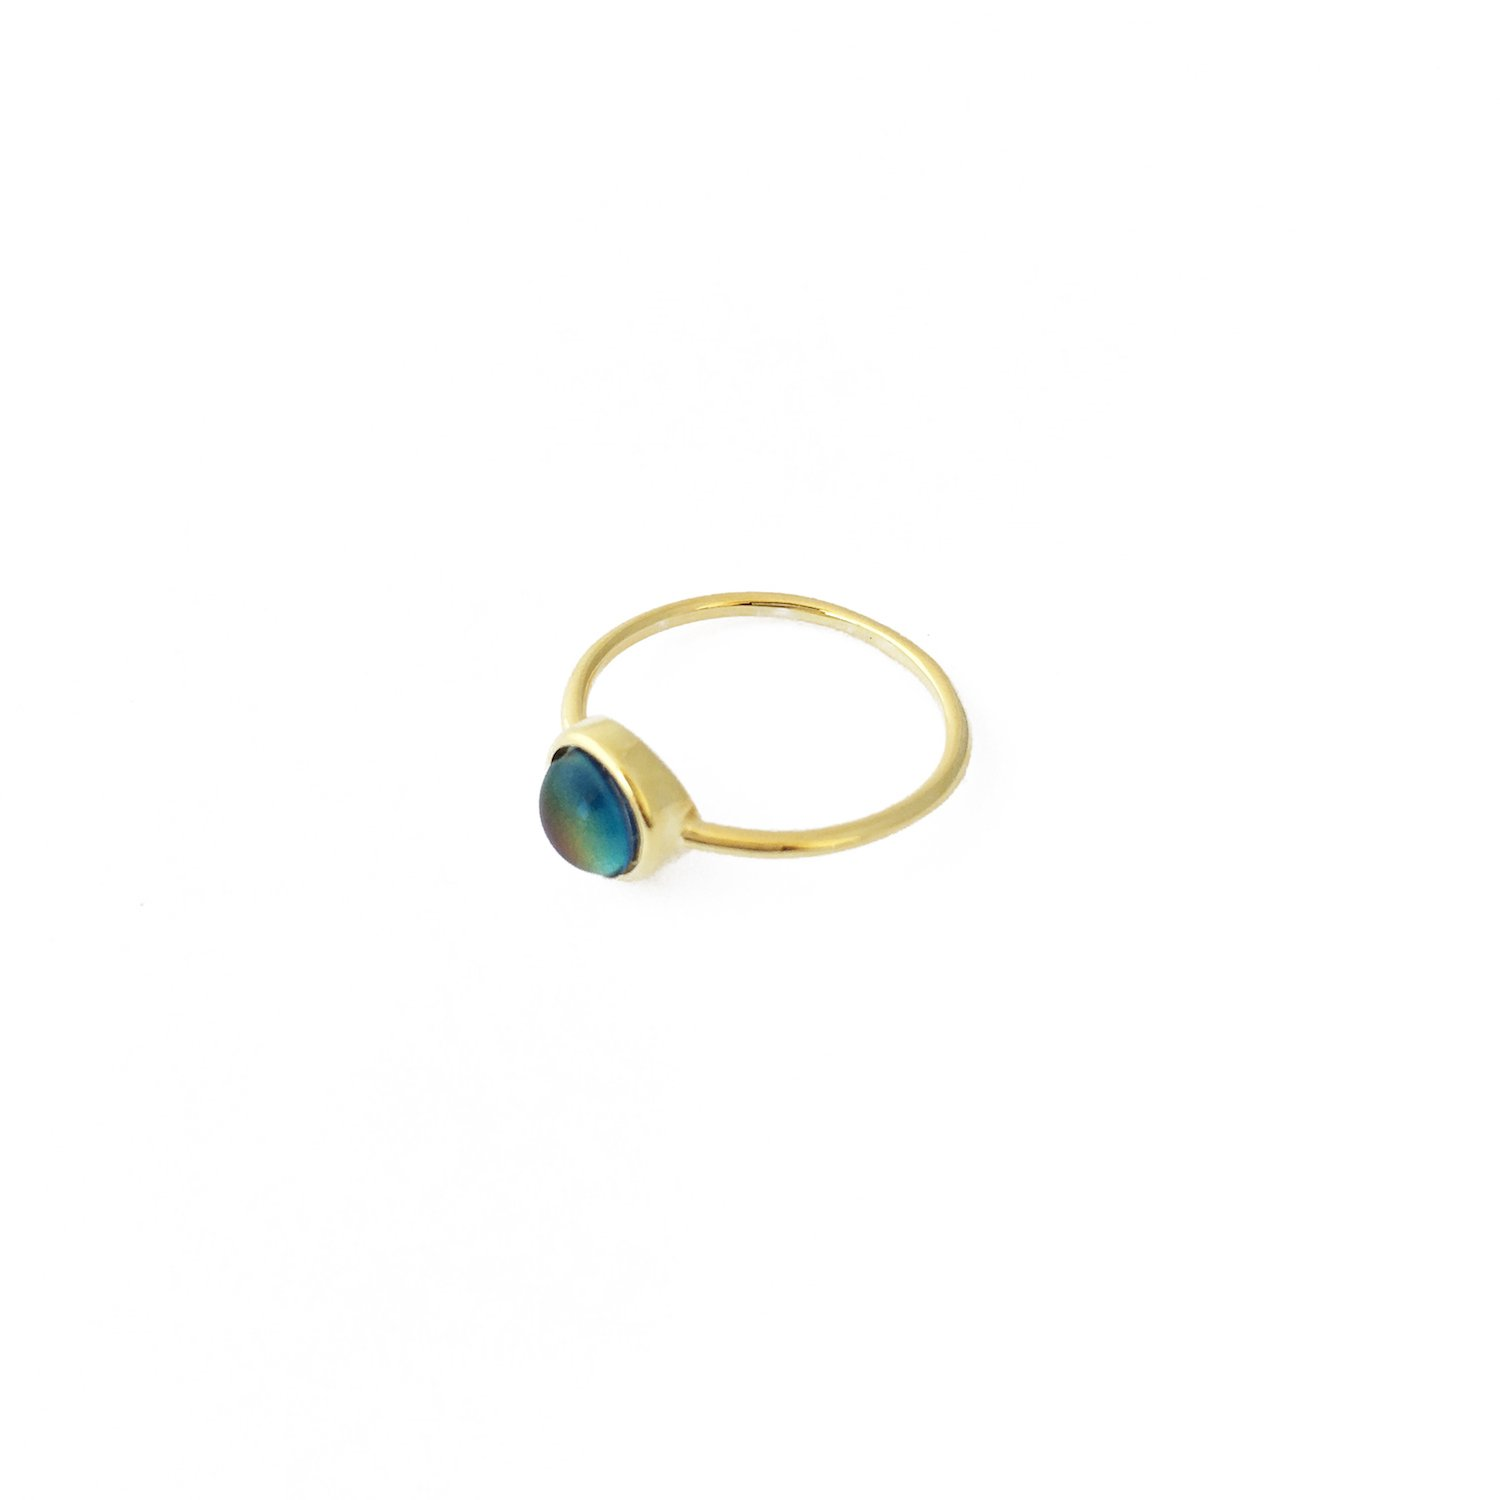 HONEYCAT Mood Ring in Gold, Rose Gold, or Silver | Minimalist, Delicate Jewelry